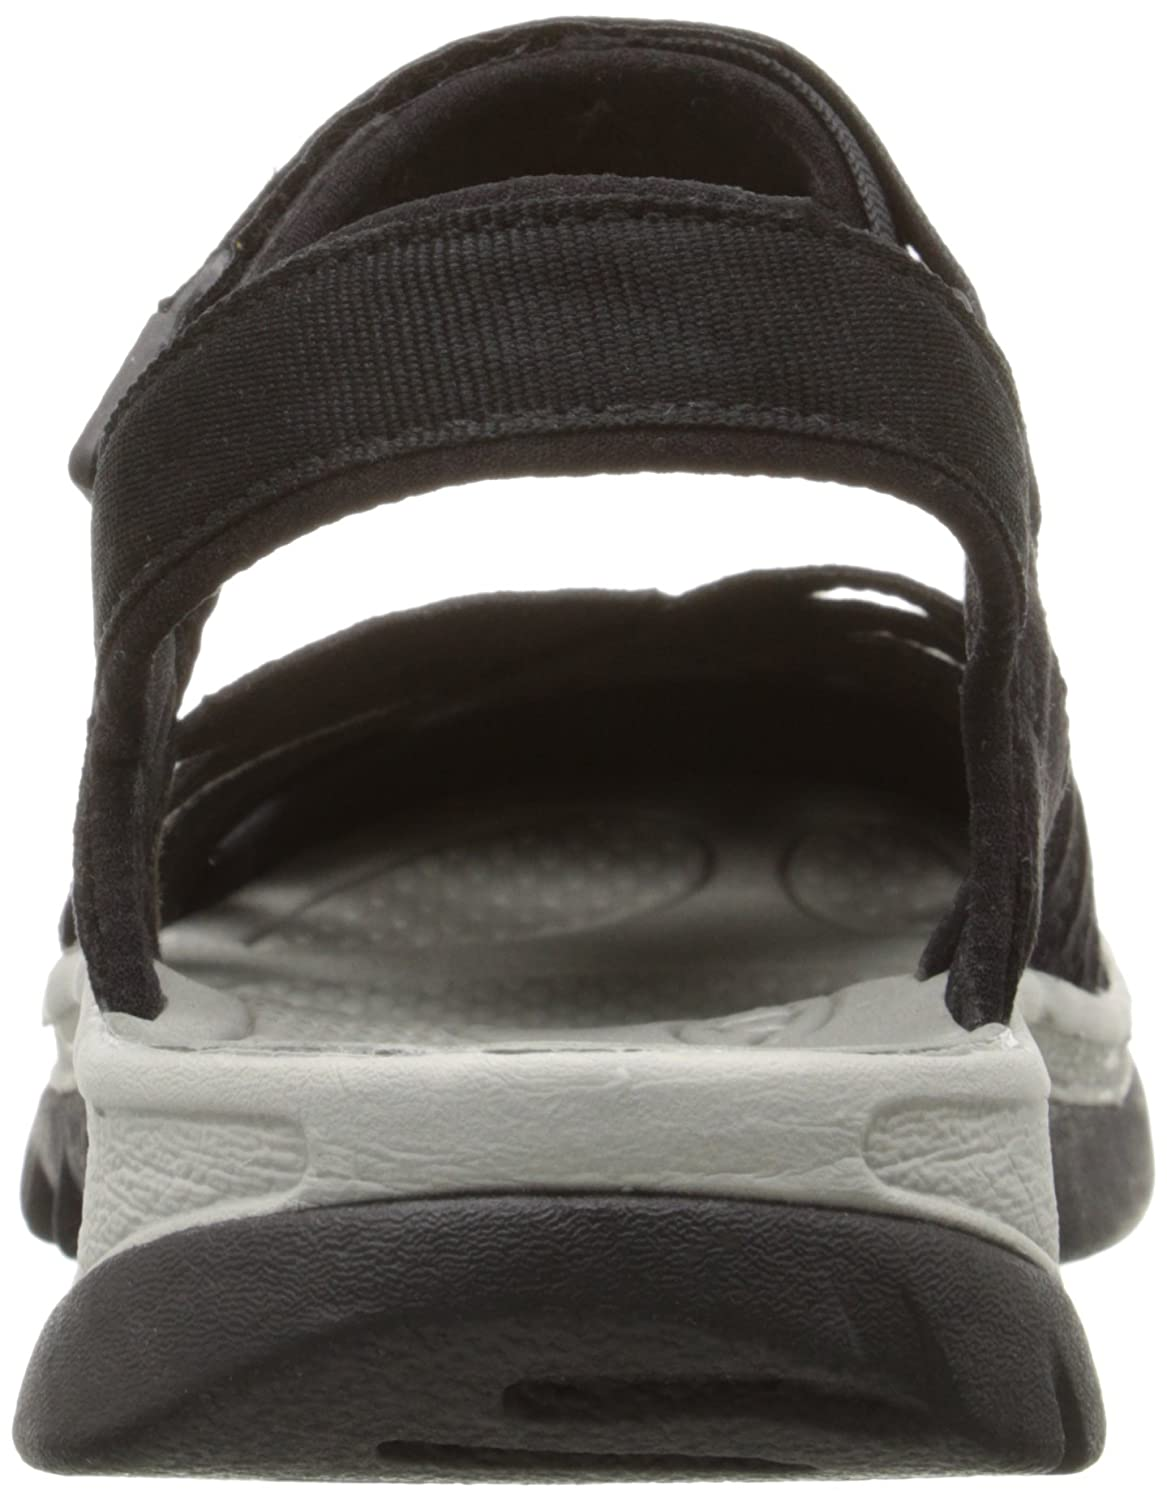 KEEN Women's Rose Sandal B079FP86TC 35 M EU|Black/Neutral Gray